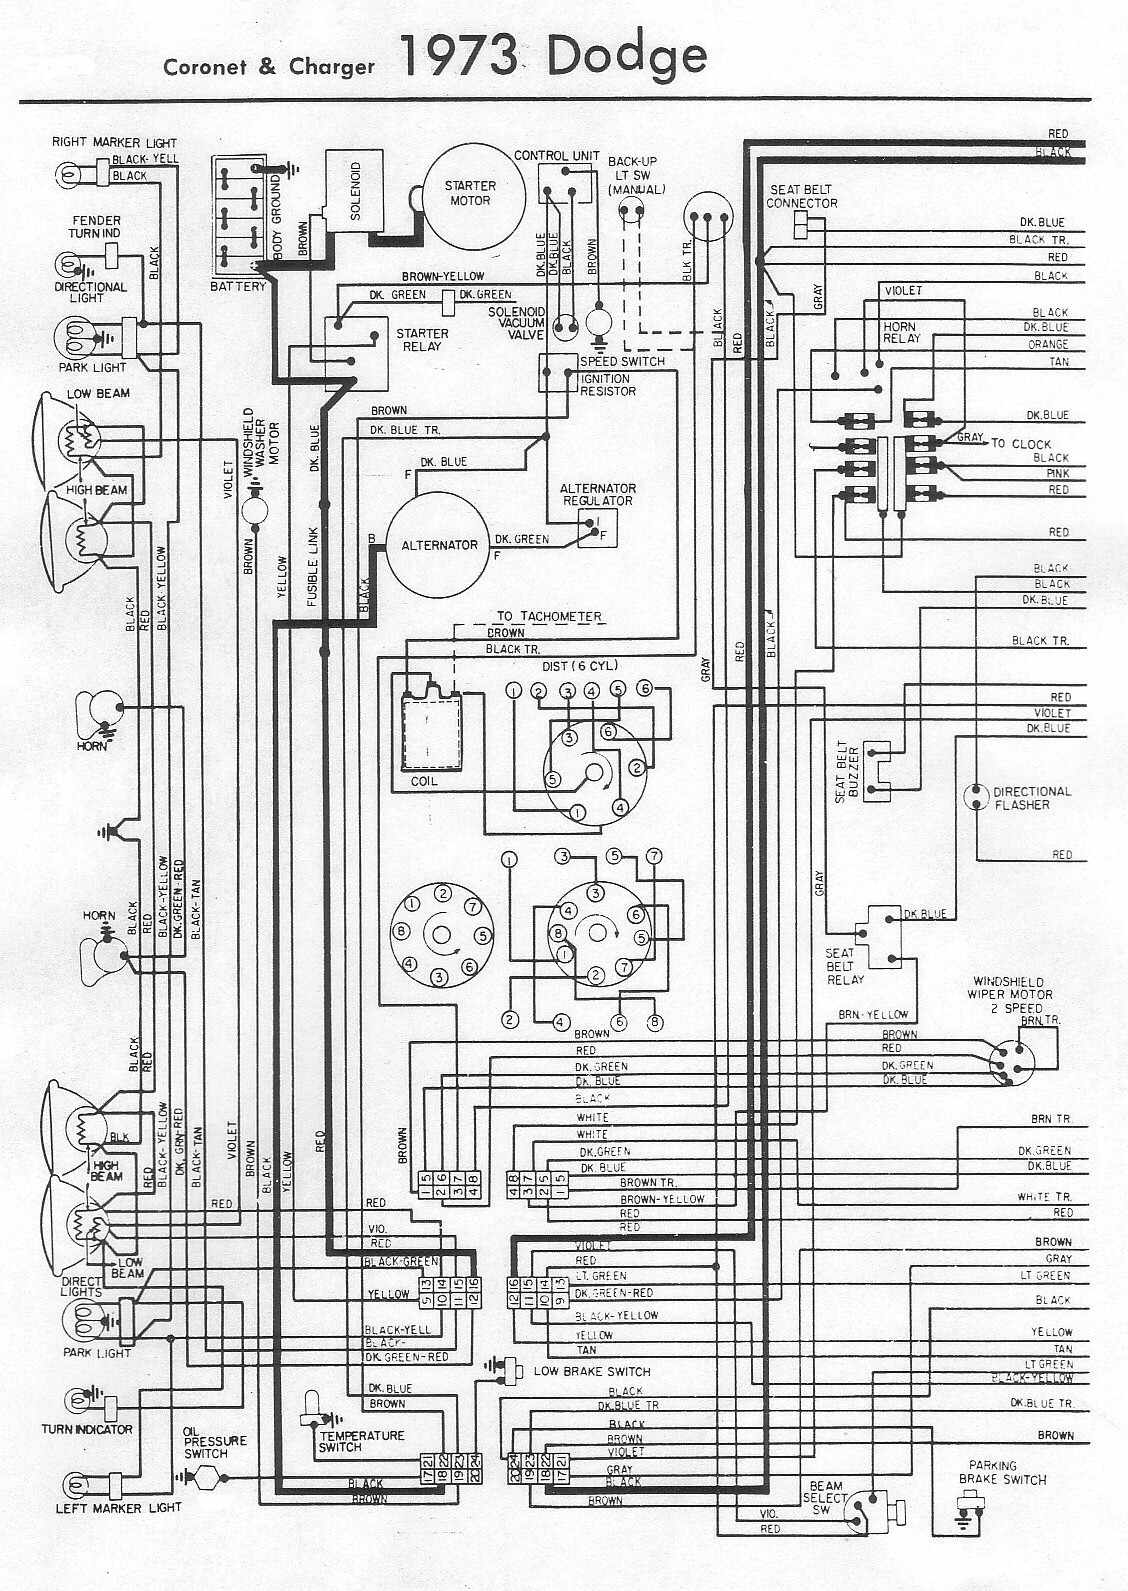 1967 charger wiring diagram wiring diagram rh 35 fomly be